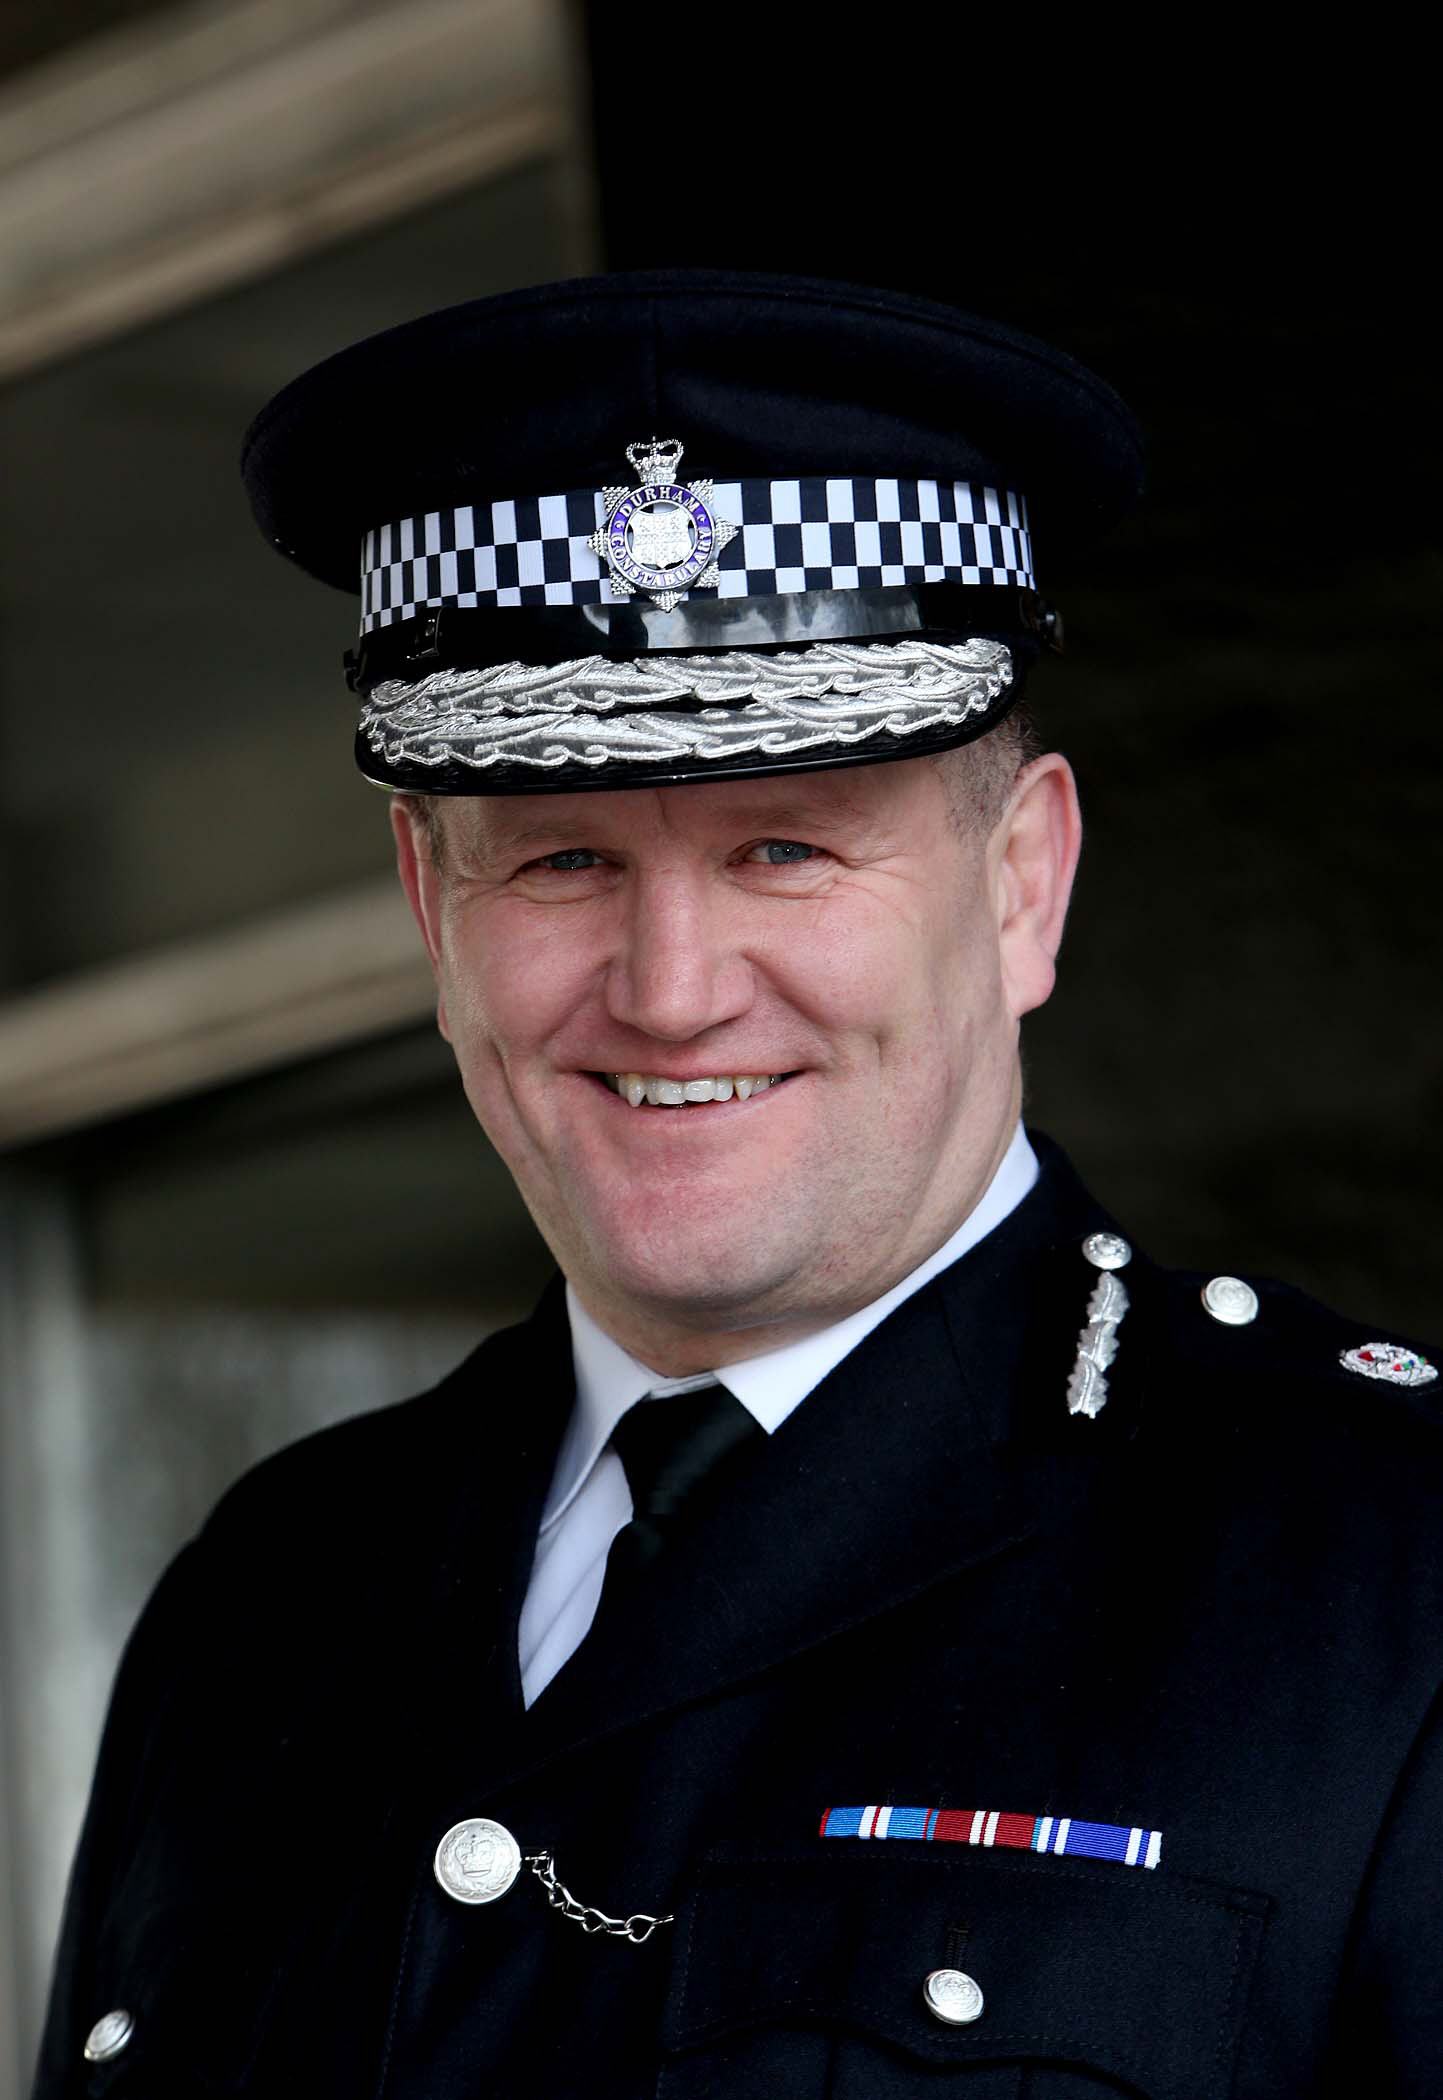 Mike Barton has been confirmed as the new Chief Constable of Durham Constabulary..